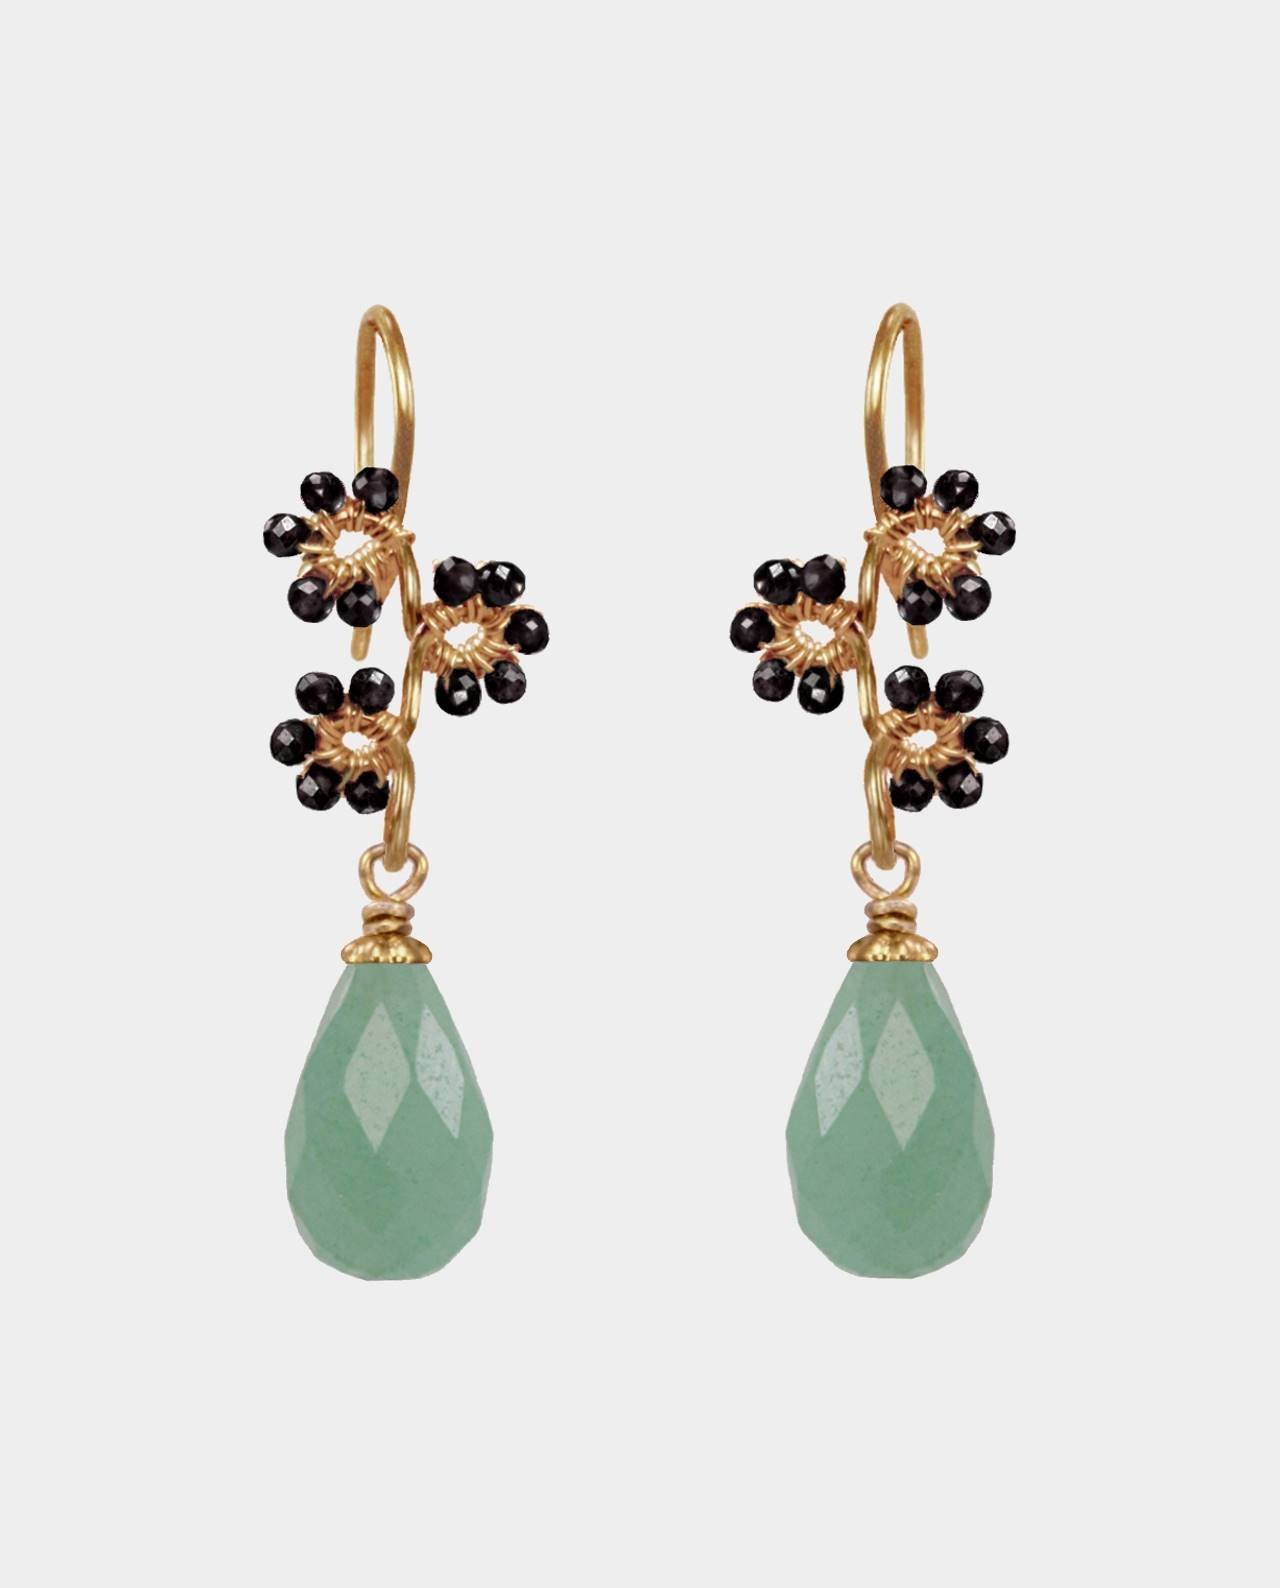 Earrings of droplet-shaped green aventurines decorated with black spinel in an excellent cut with sterling silver plated with 18 carat gold